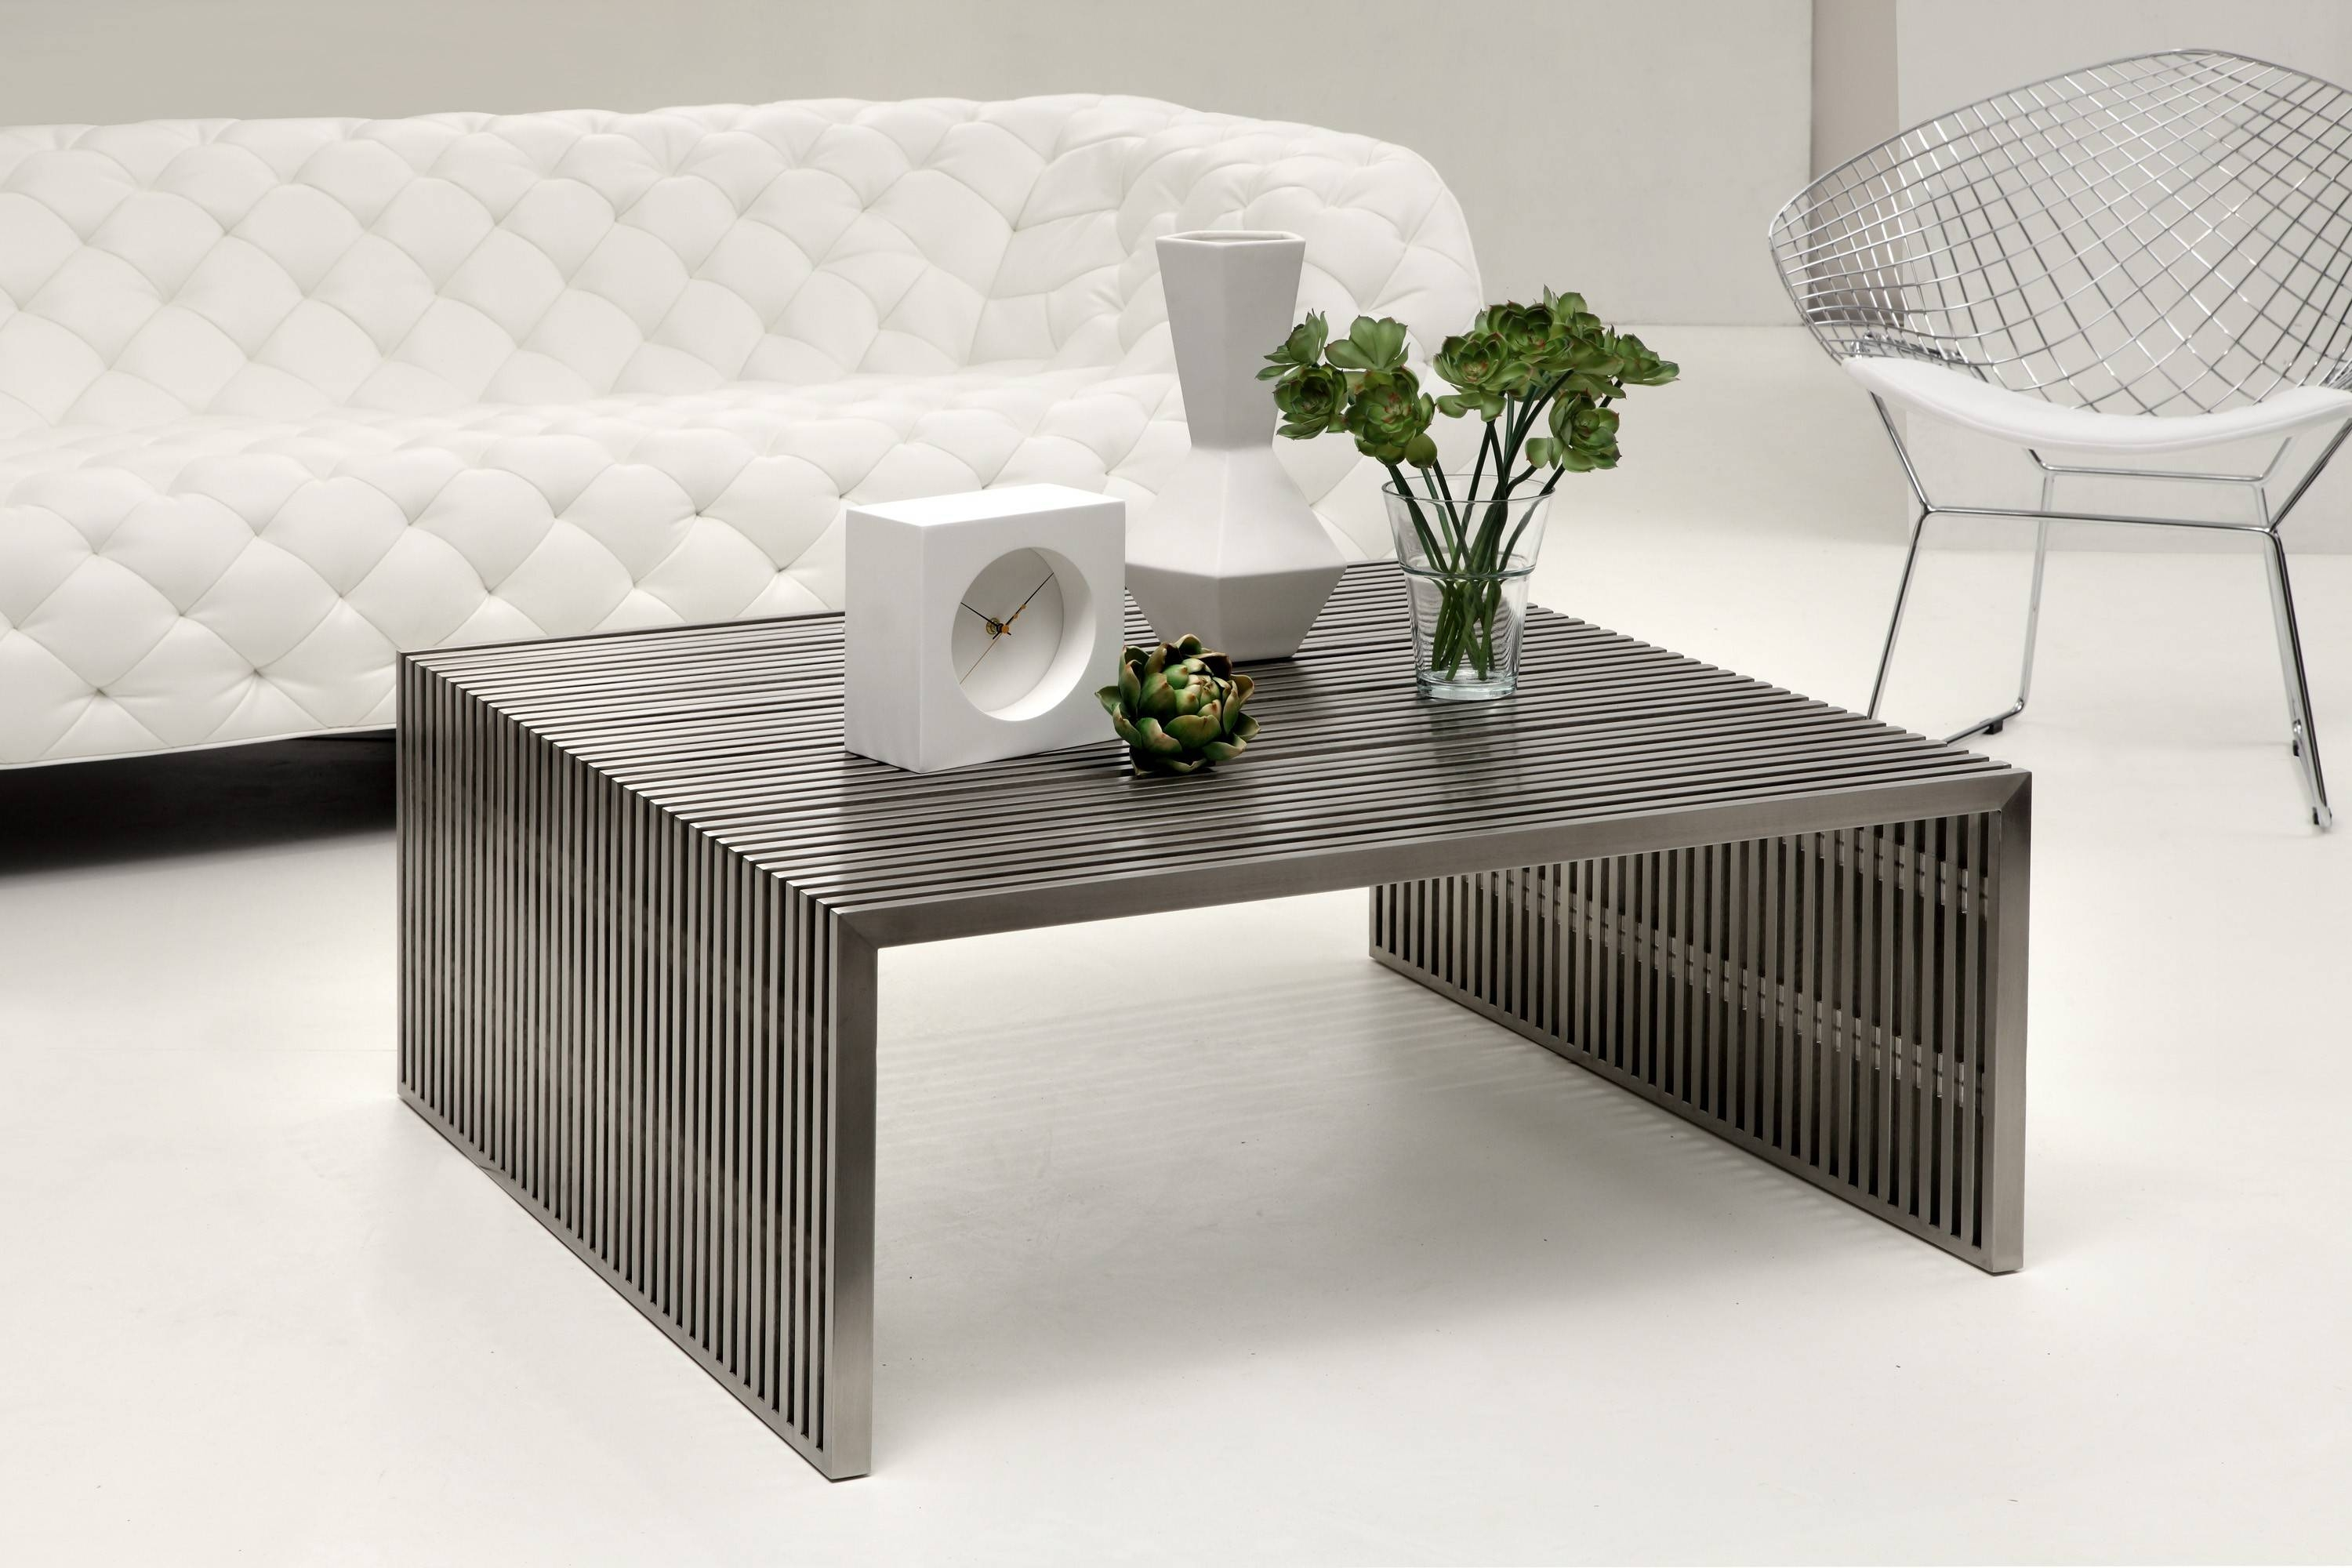 Coffee Table. Beautiful Modern Square Coffee Table Designs inside Modern Square Glass Coffee Tables (Image 4 of 15)